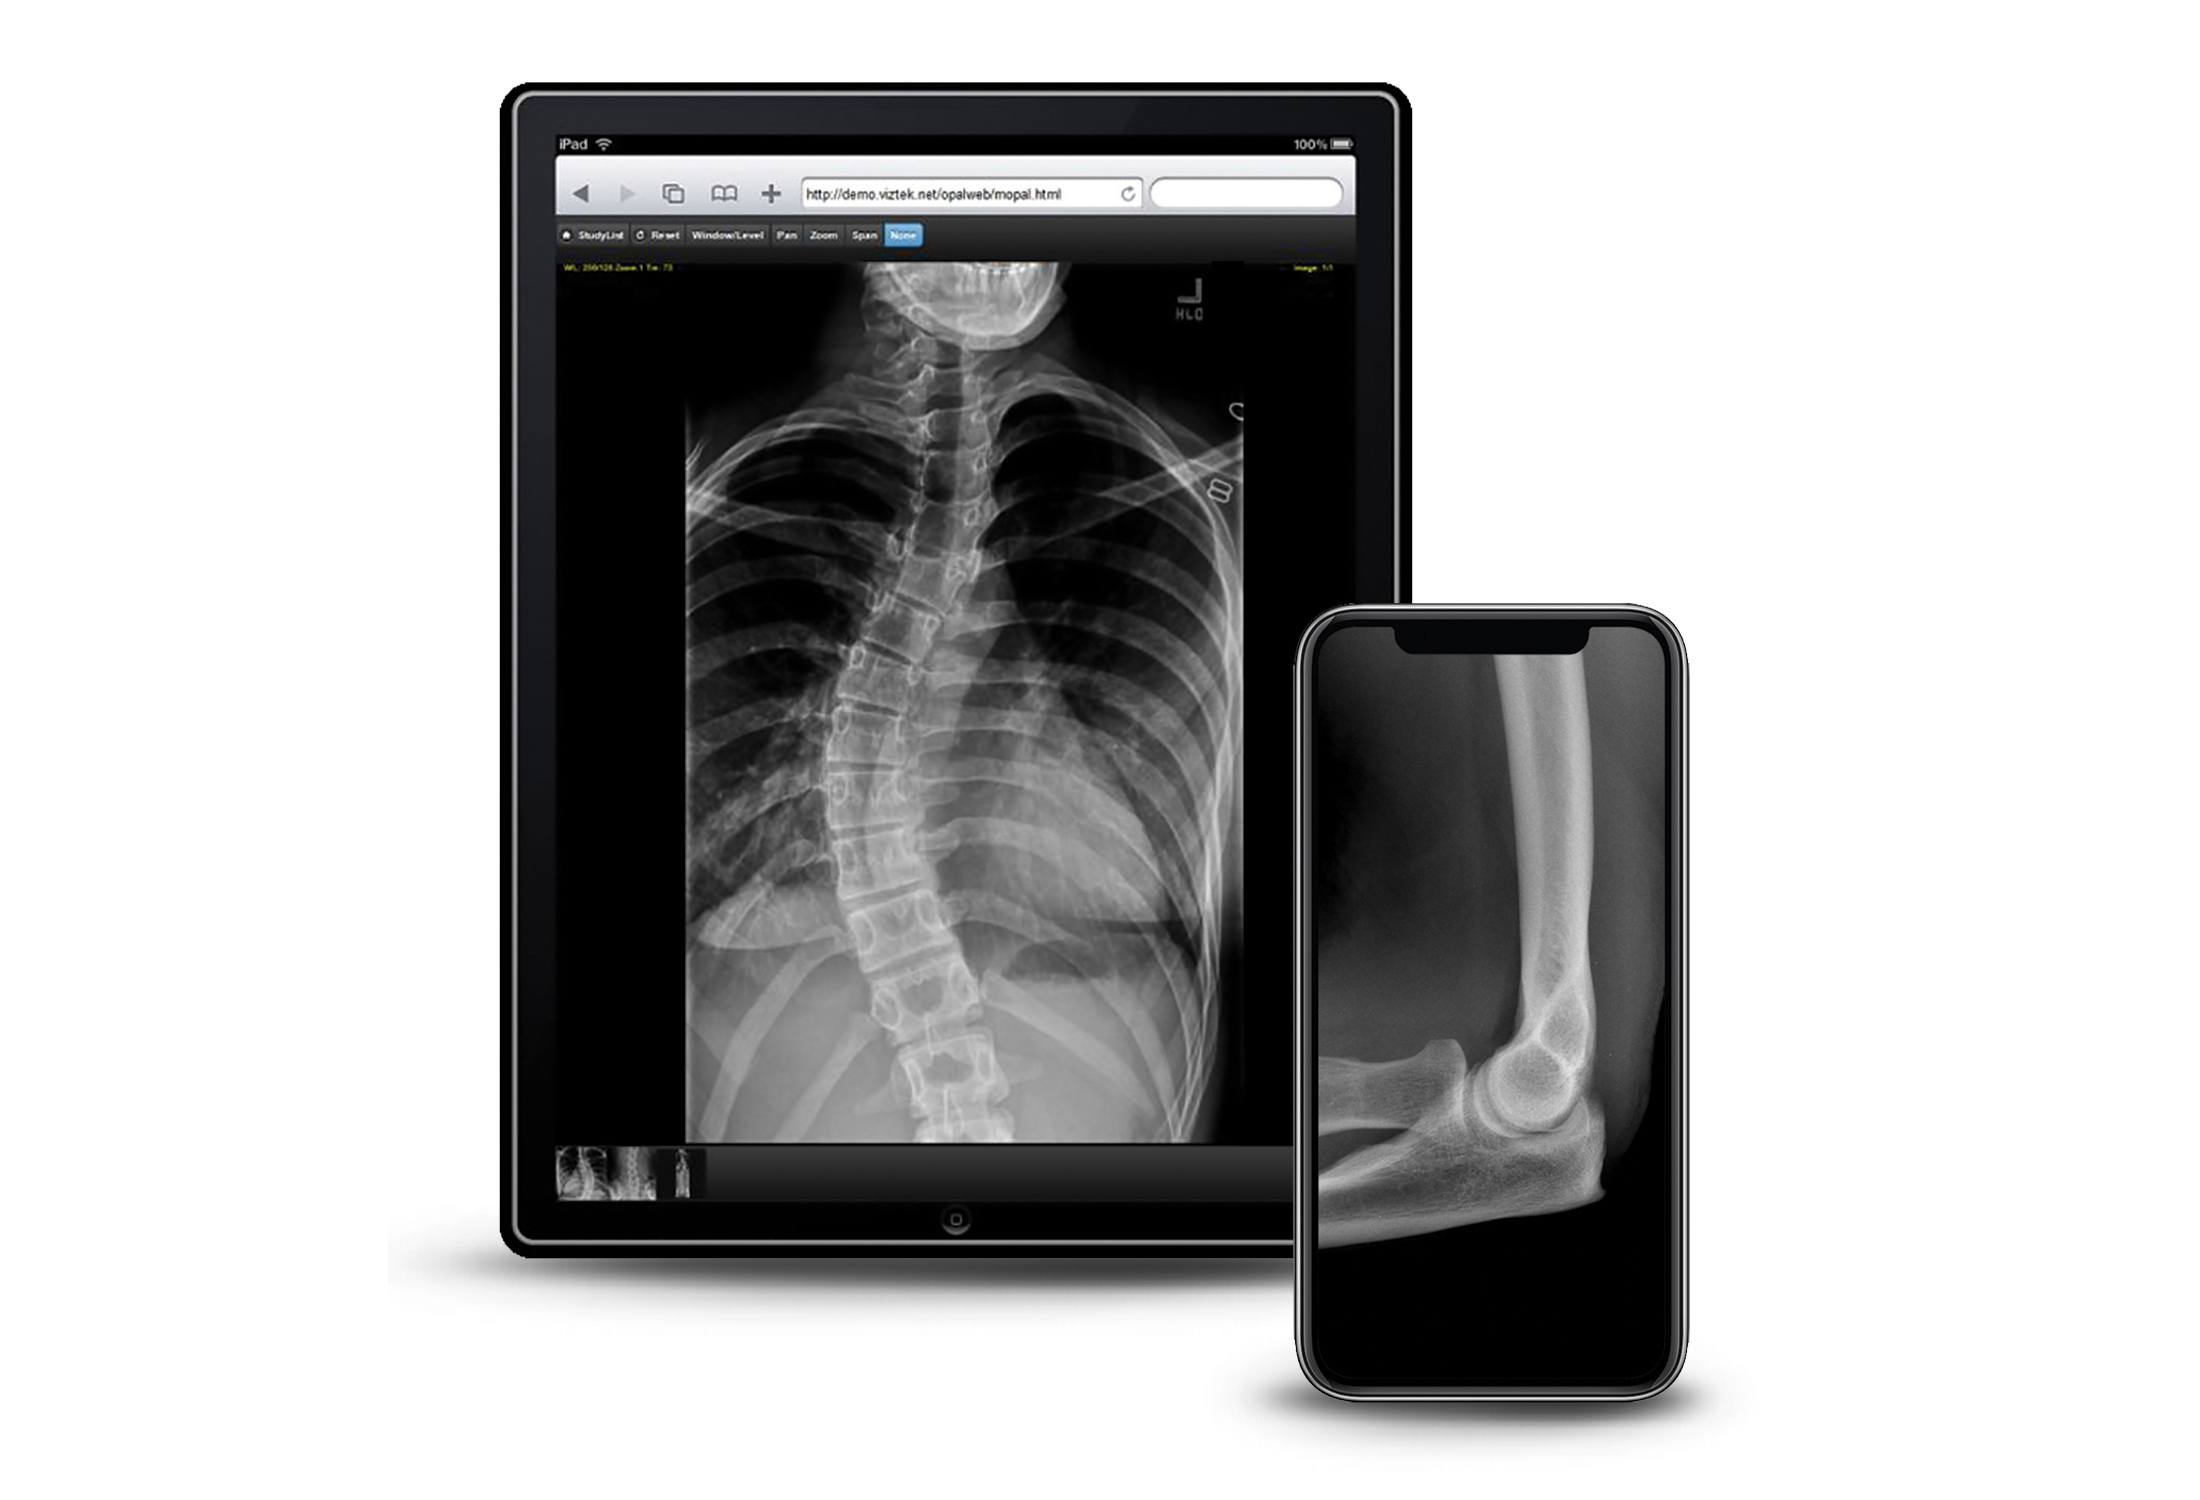 Remote X-ray viewing on mobile devices